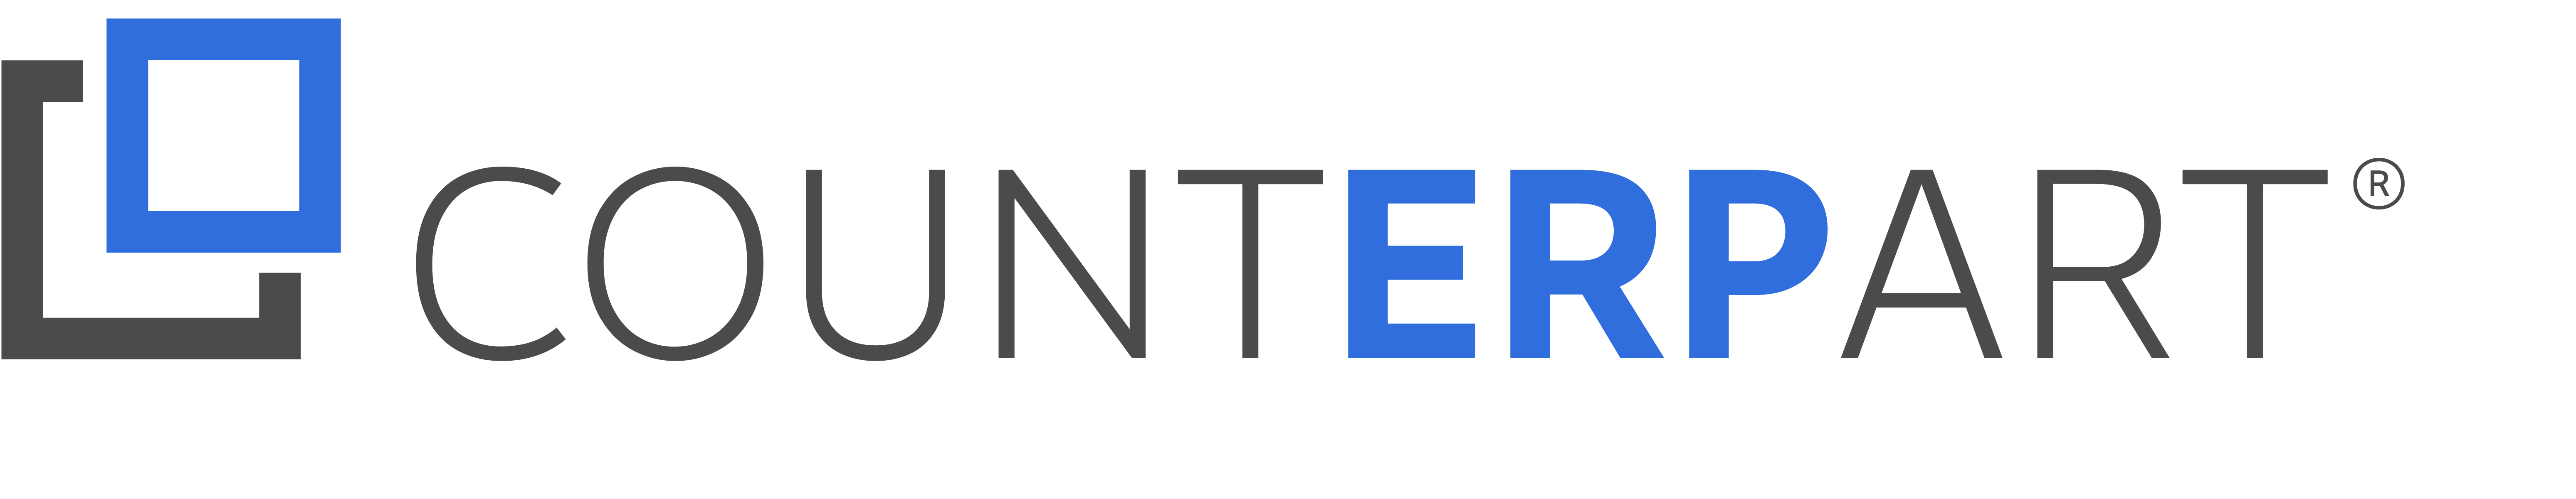 Engineer to Order Manufacturers Value Build-to-Print Feature in COUNTERPART ERP